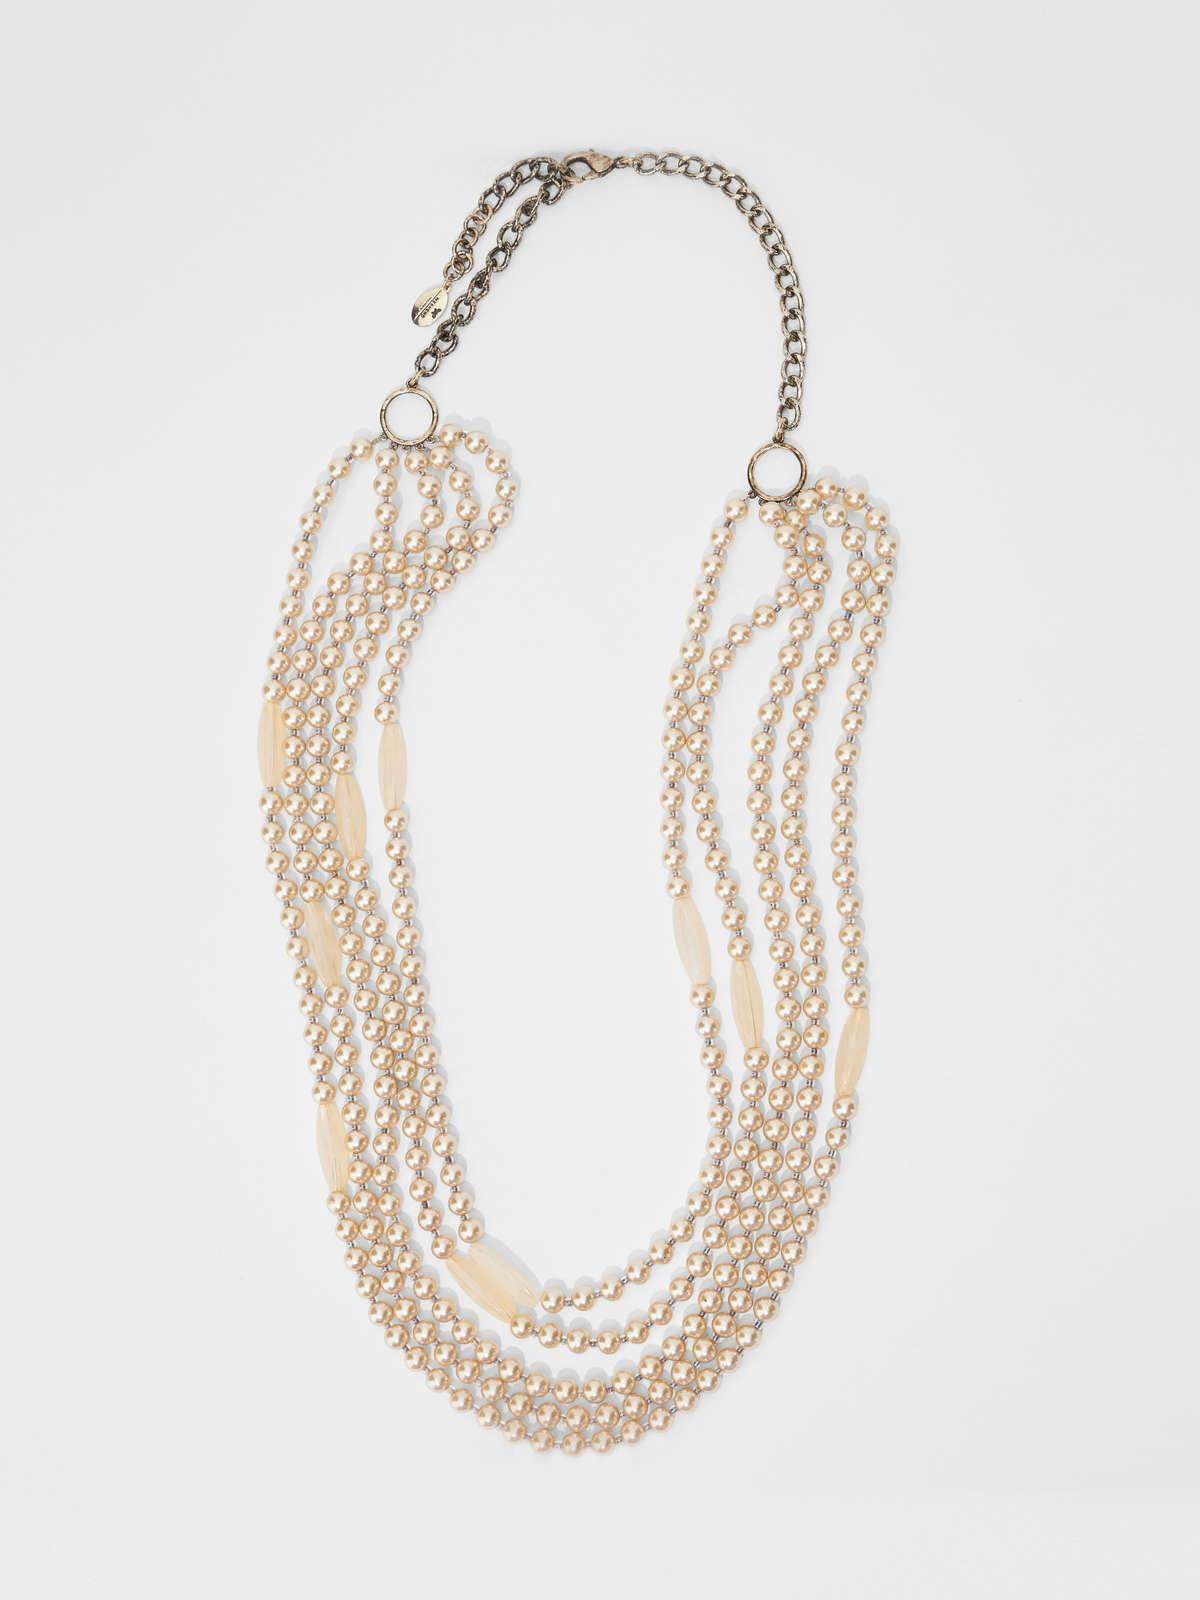 Womens Max Mara Jewelry   Multi-Strand Necklace With Bead Details Beige